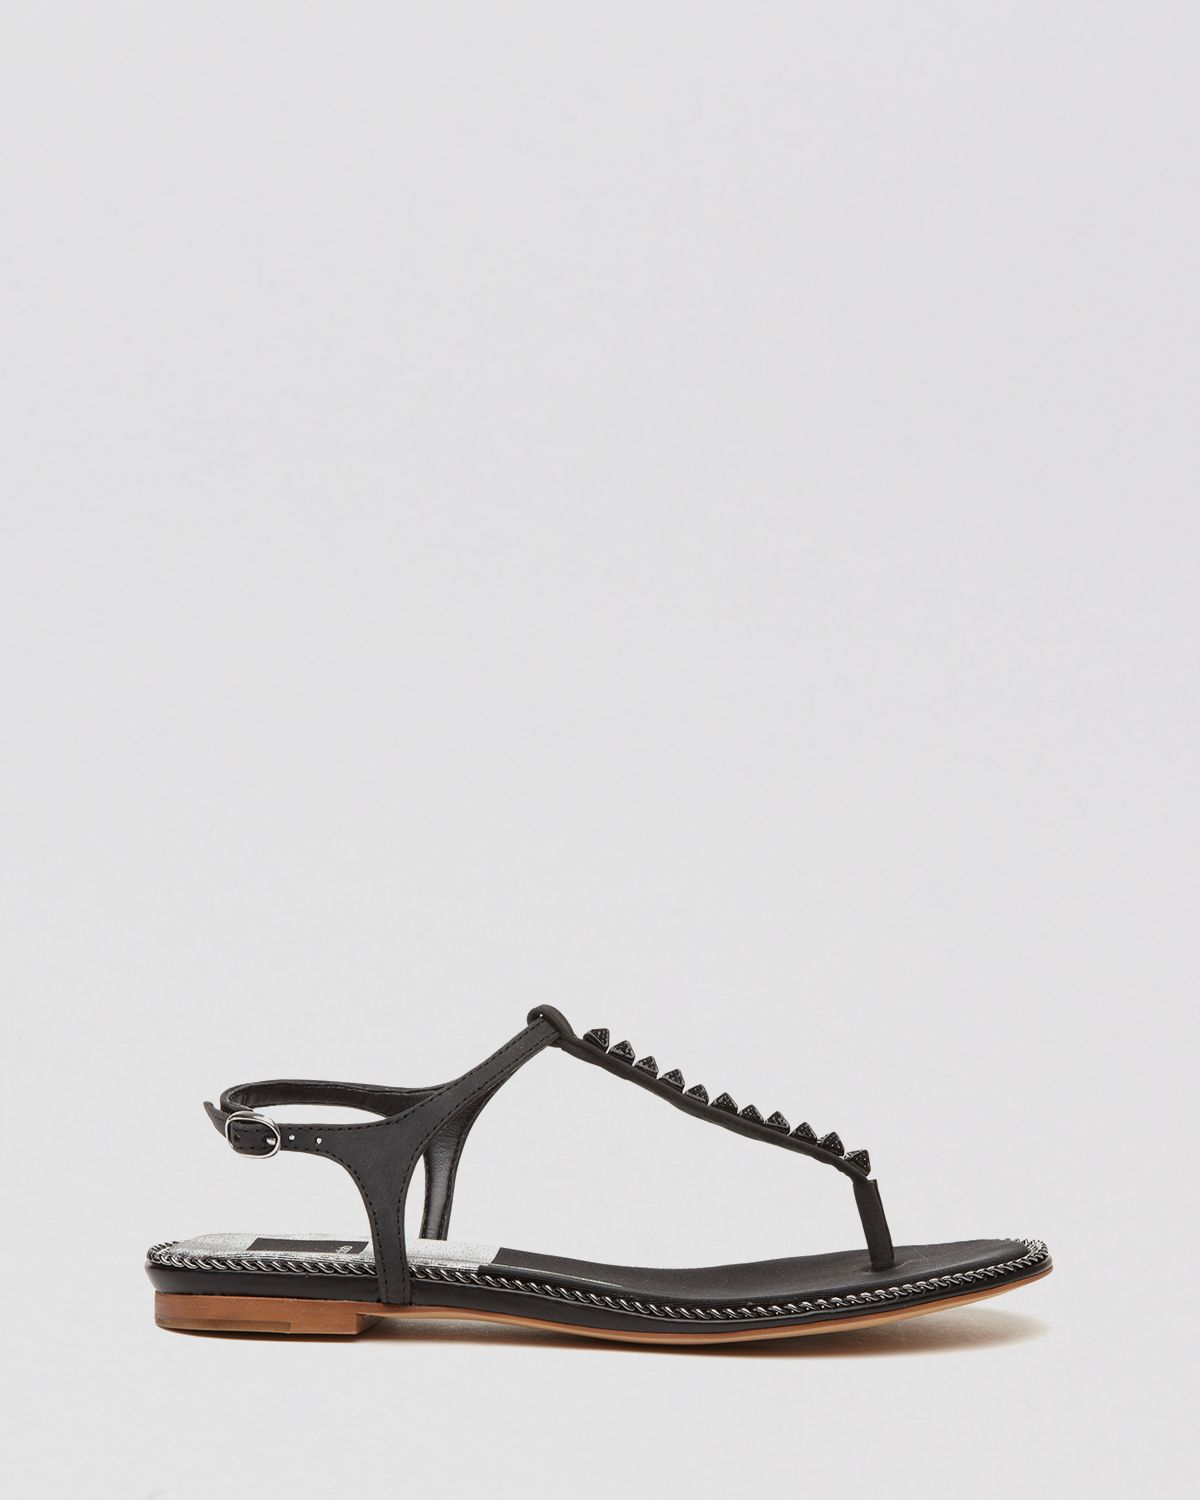 5bac93cc0 Lyst - Dolce Vita Flat Thong Sandals Ensley Studded T Strap in Black